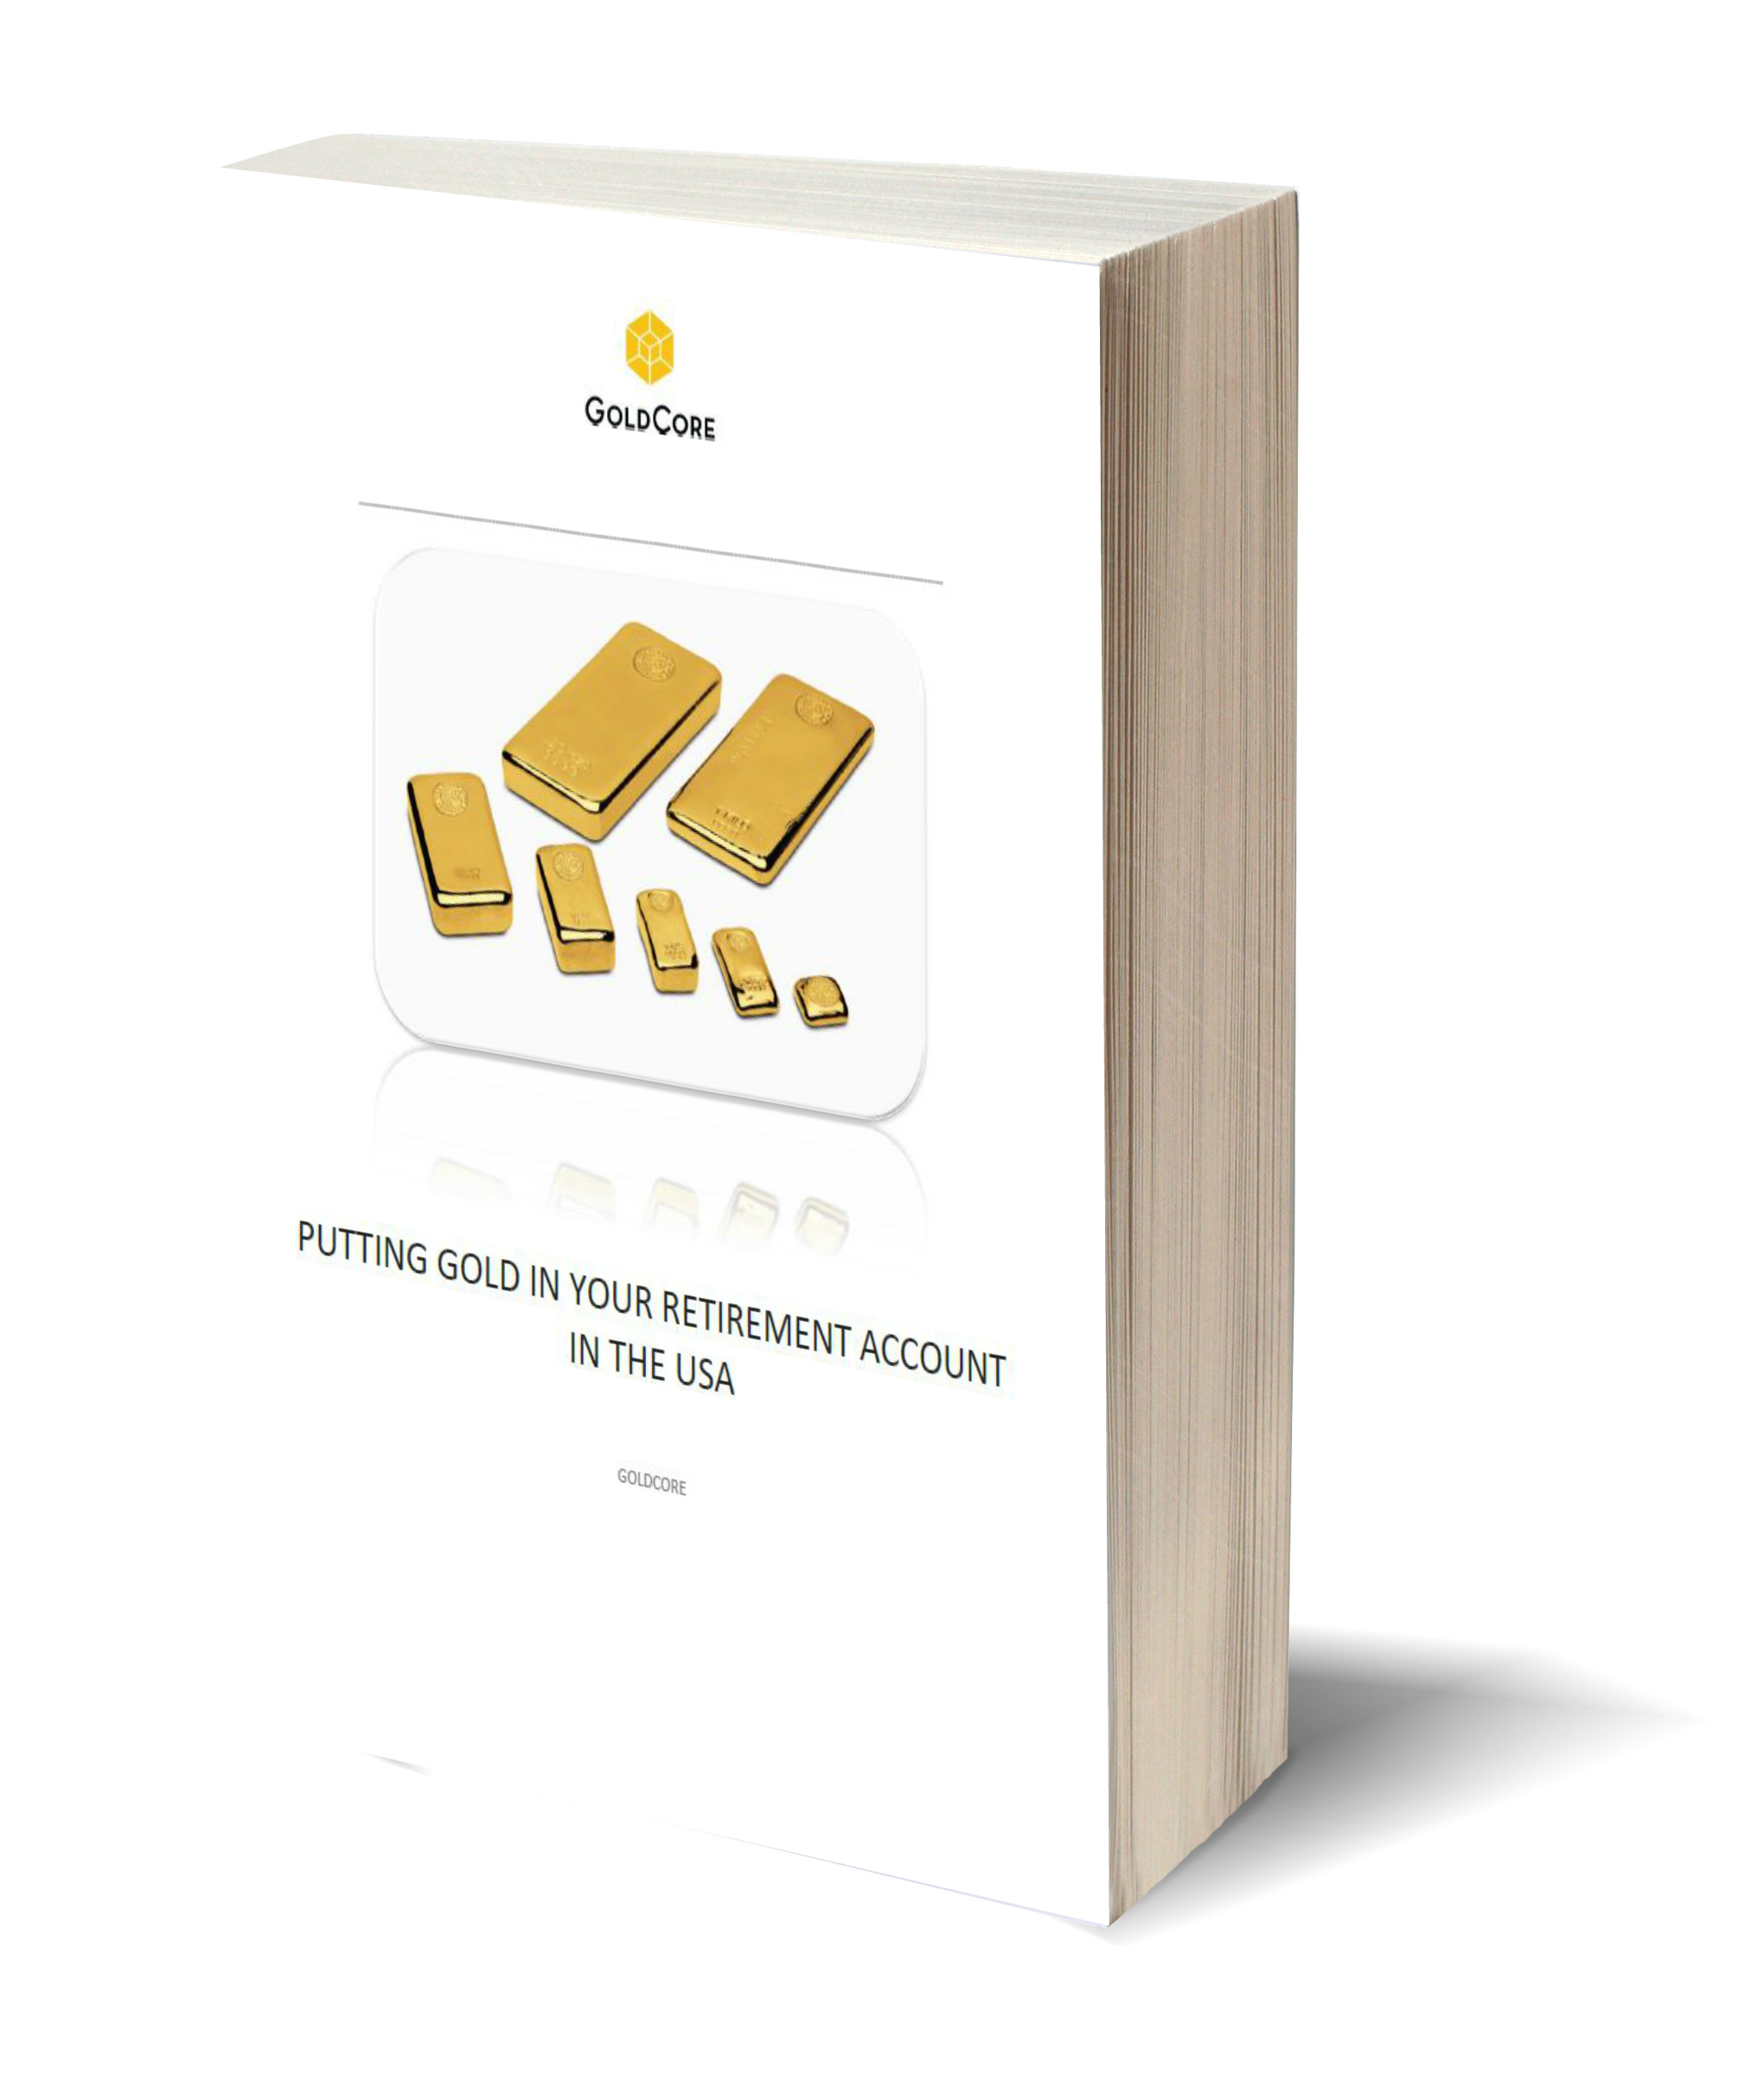 Putting Gold in Your Retirement Account in the USA